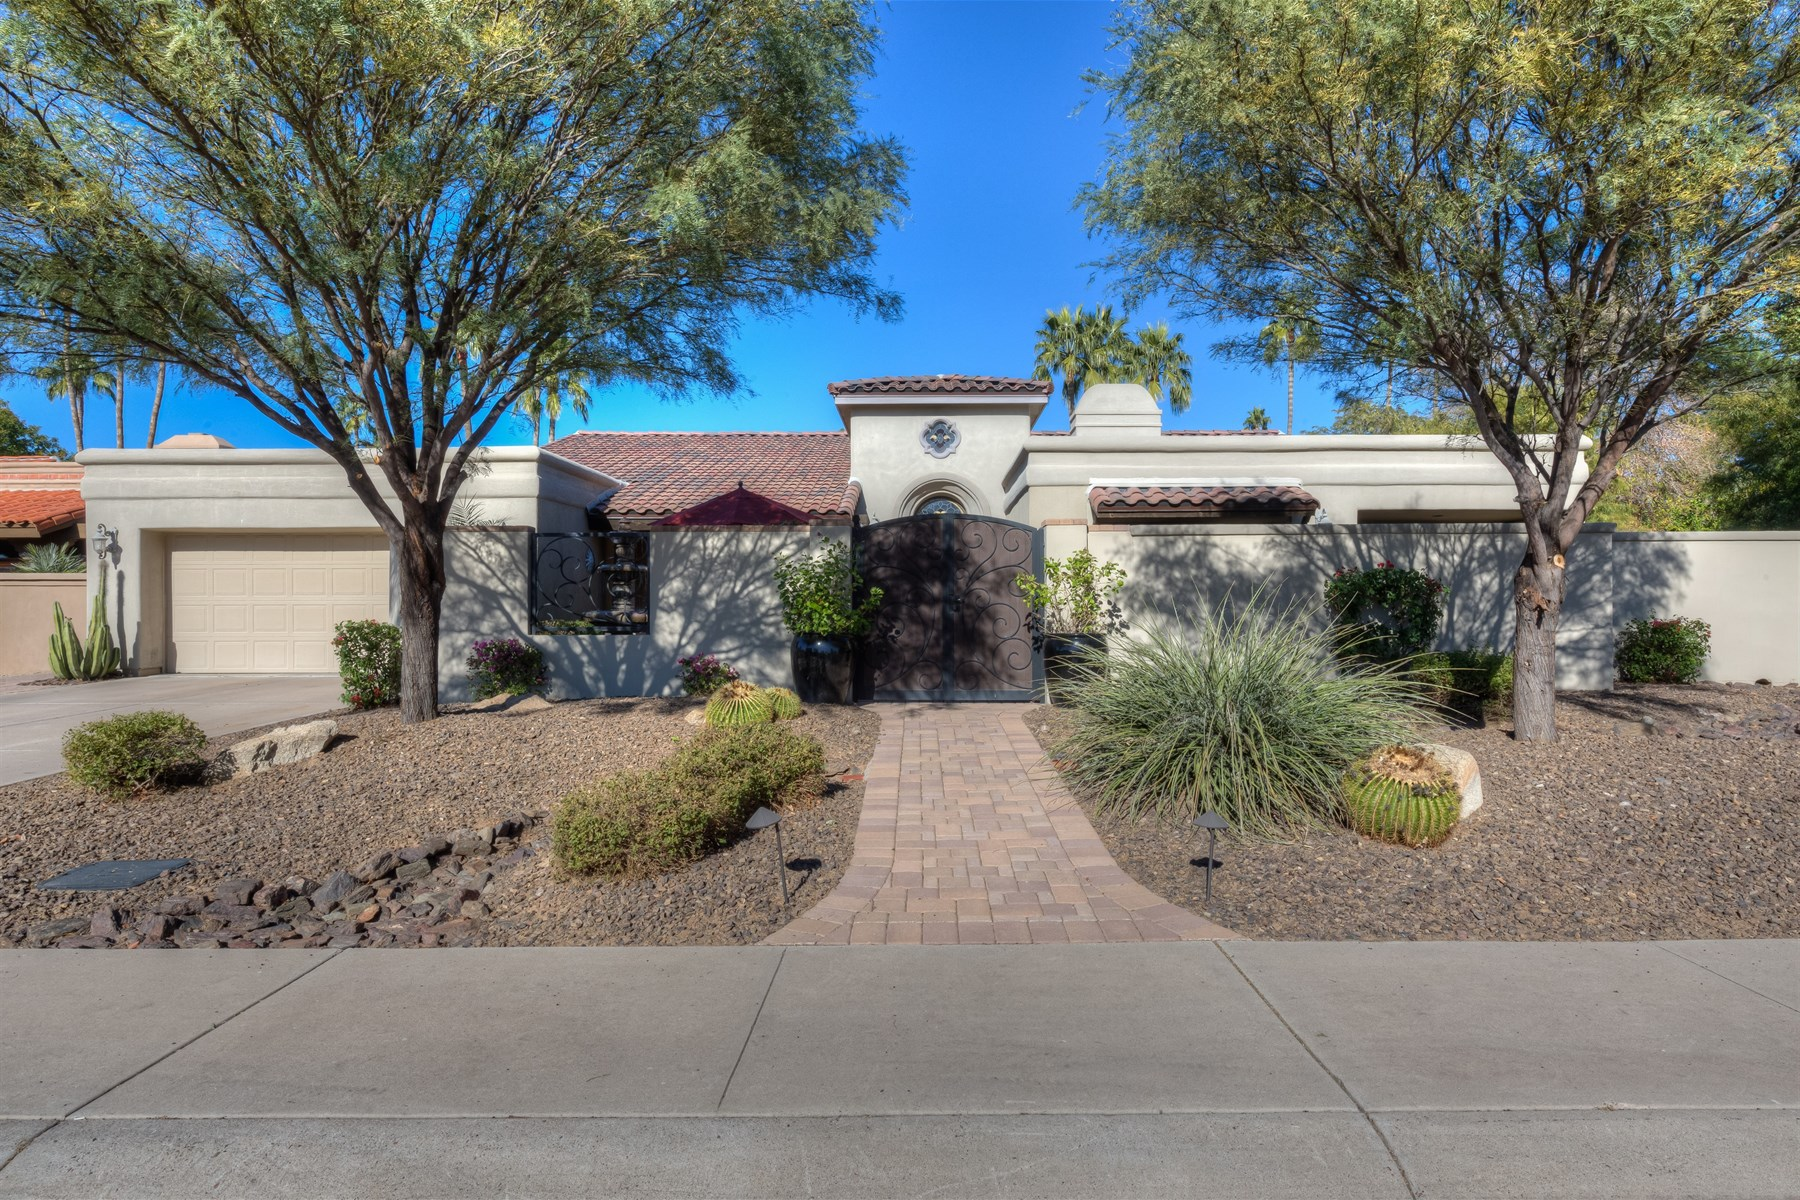 Single Family Home for Sale at Beautiful Scottsdale Ranch home 9740 E Gold Dust Ave Scottsdale, Arizona, 85258 United States